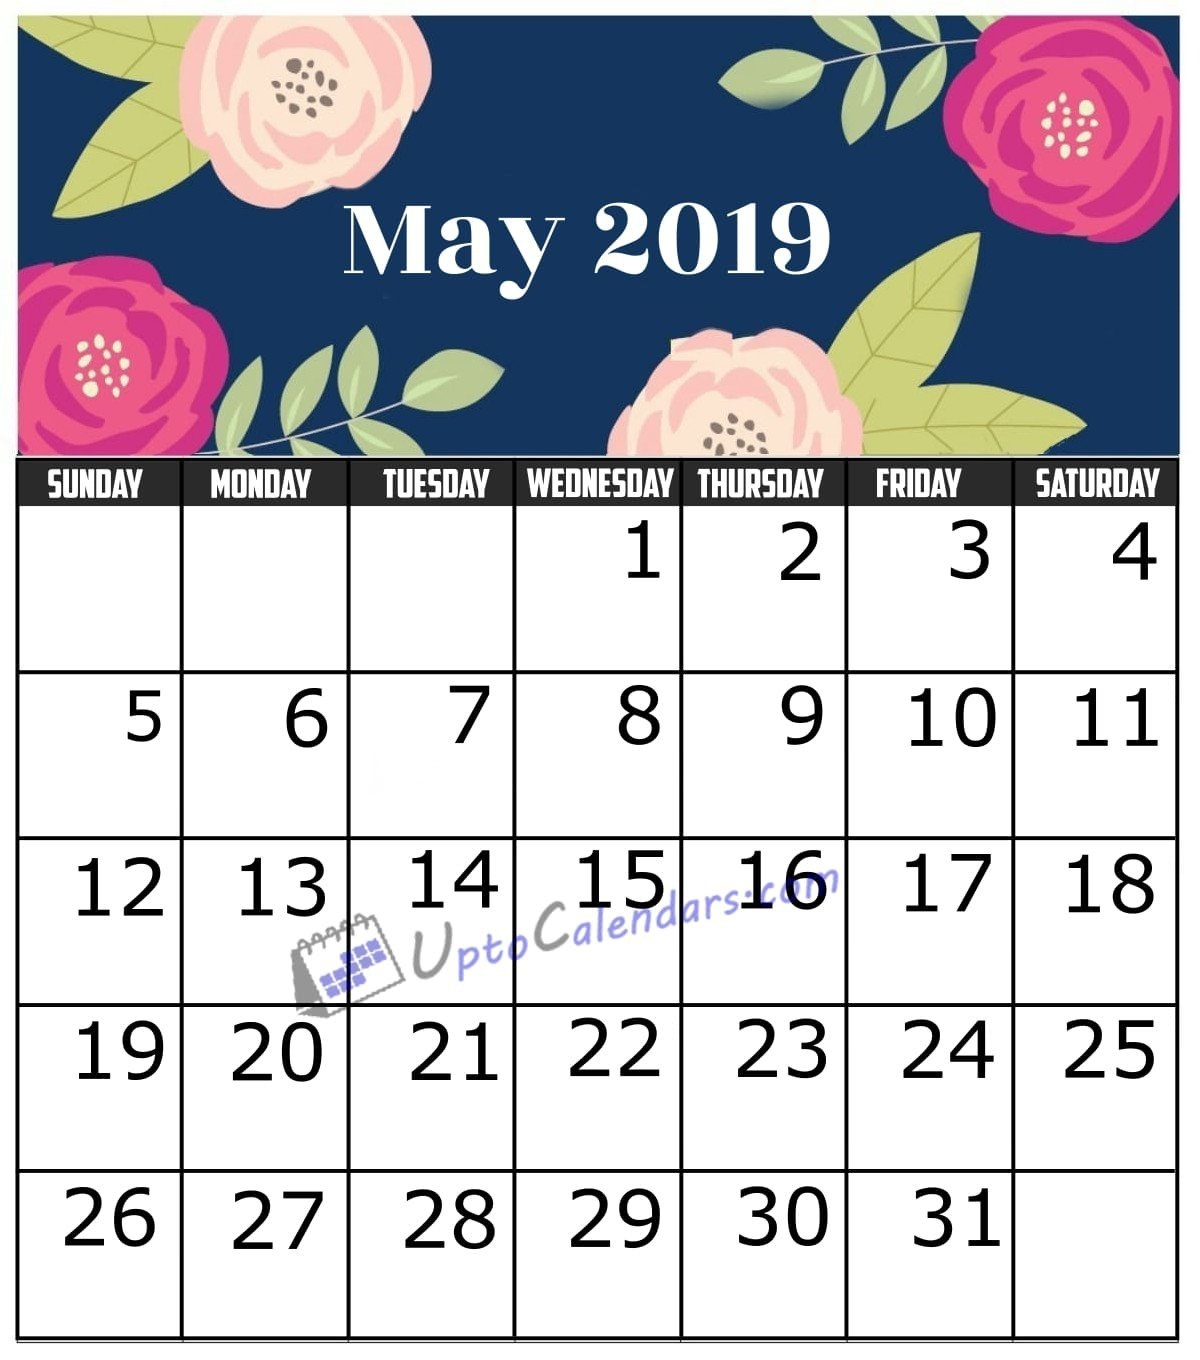 May 2019 Calendar Printable Template With Holidays Pdf Word Excel May 9 2019 Calendar